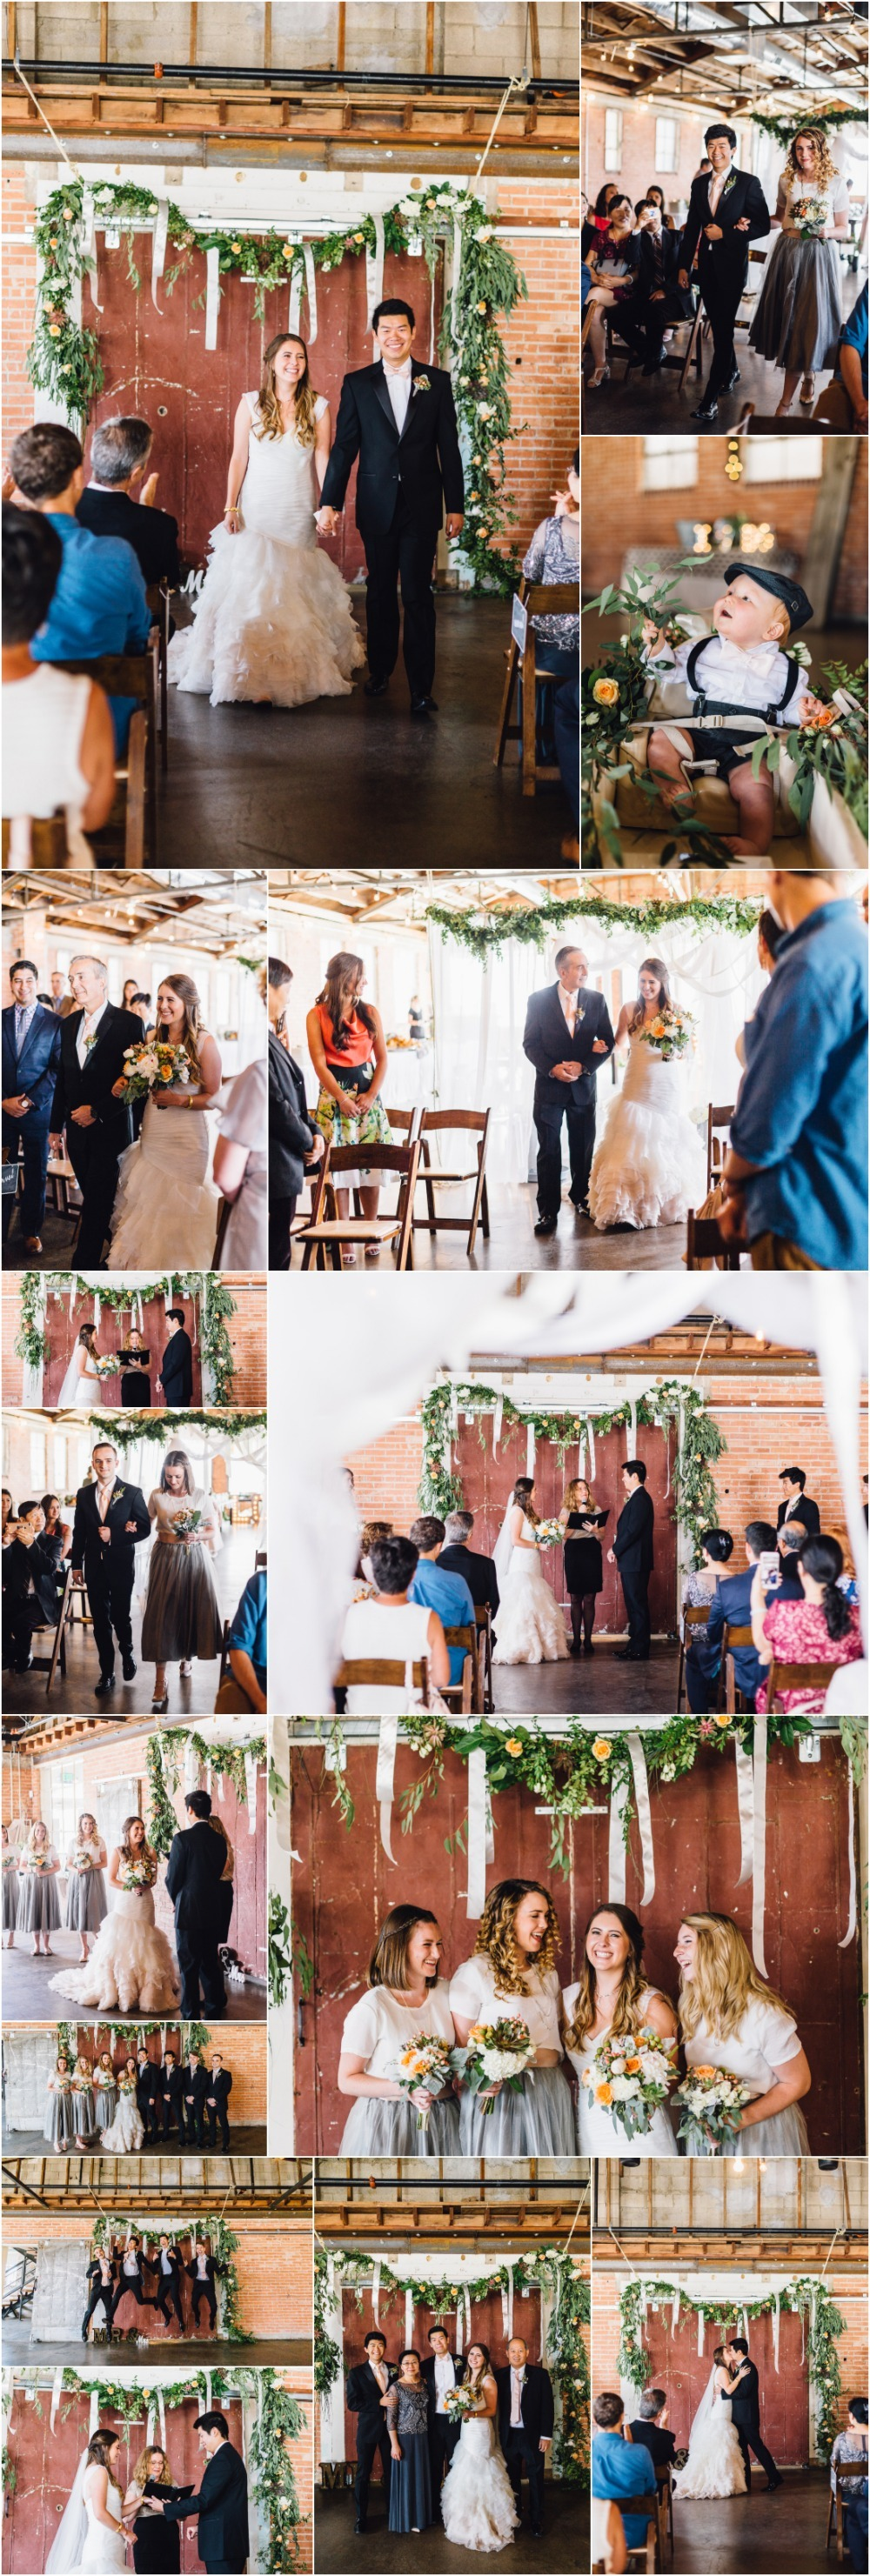 Salt Lake City Wedding Ceremony Photographer